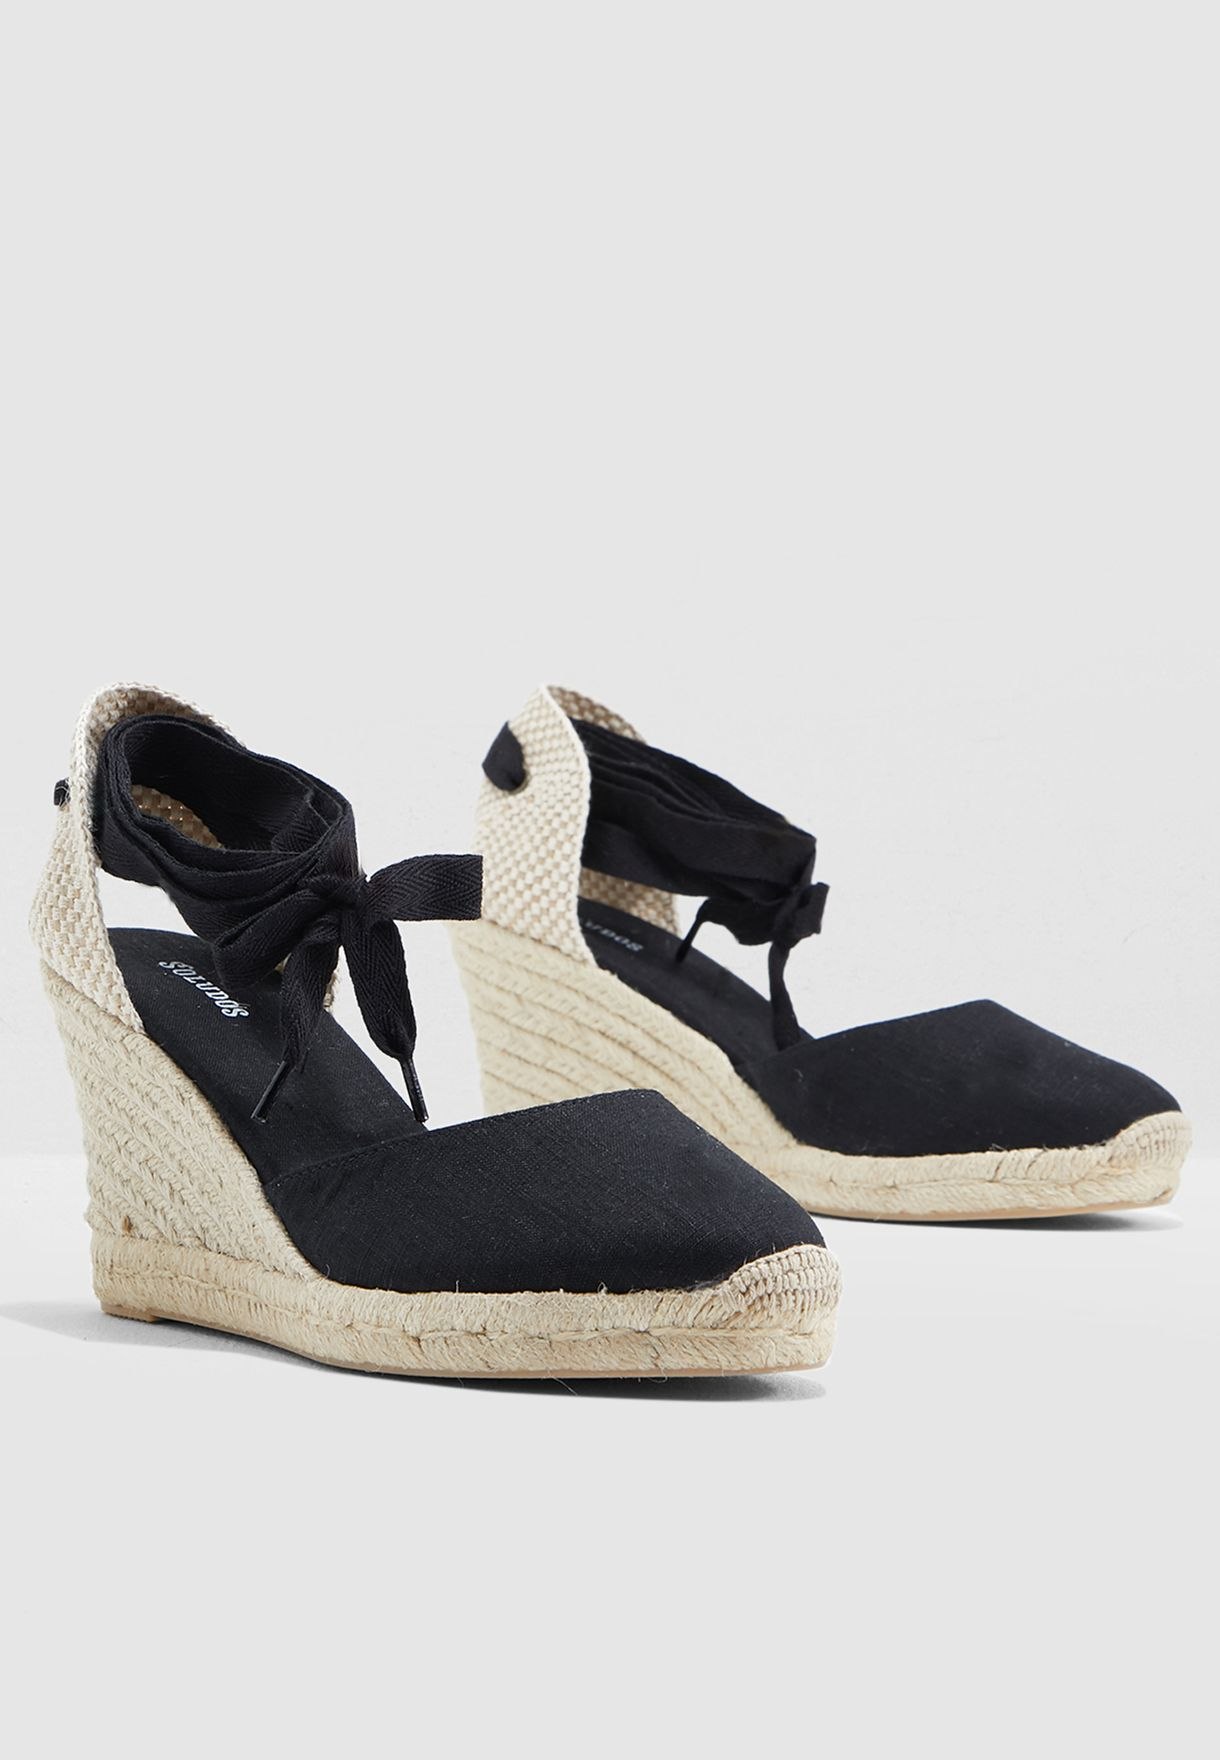 5e0664566f93 Shop Soludos black Tall Wedge Pump FWT1101 for Women in Qatar ...